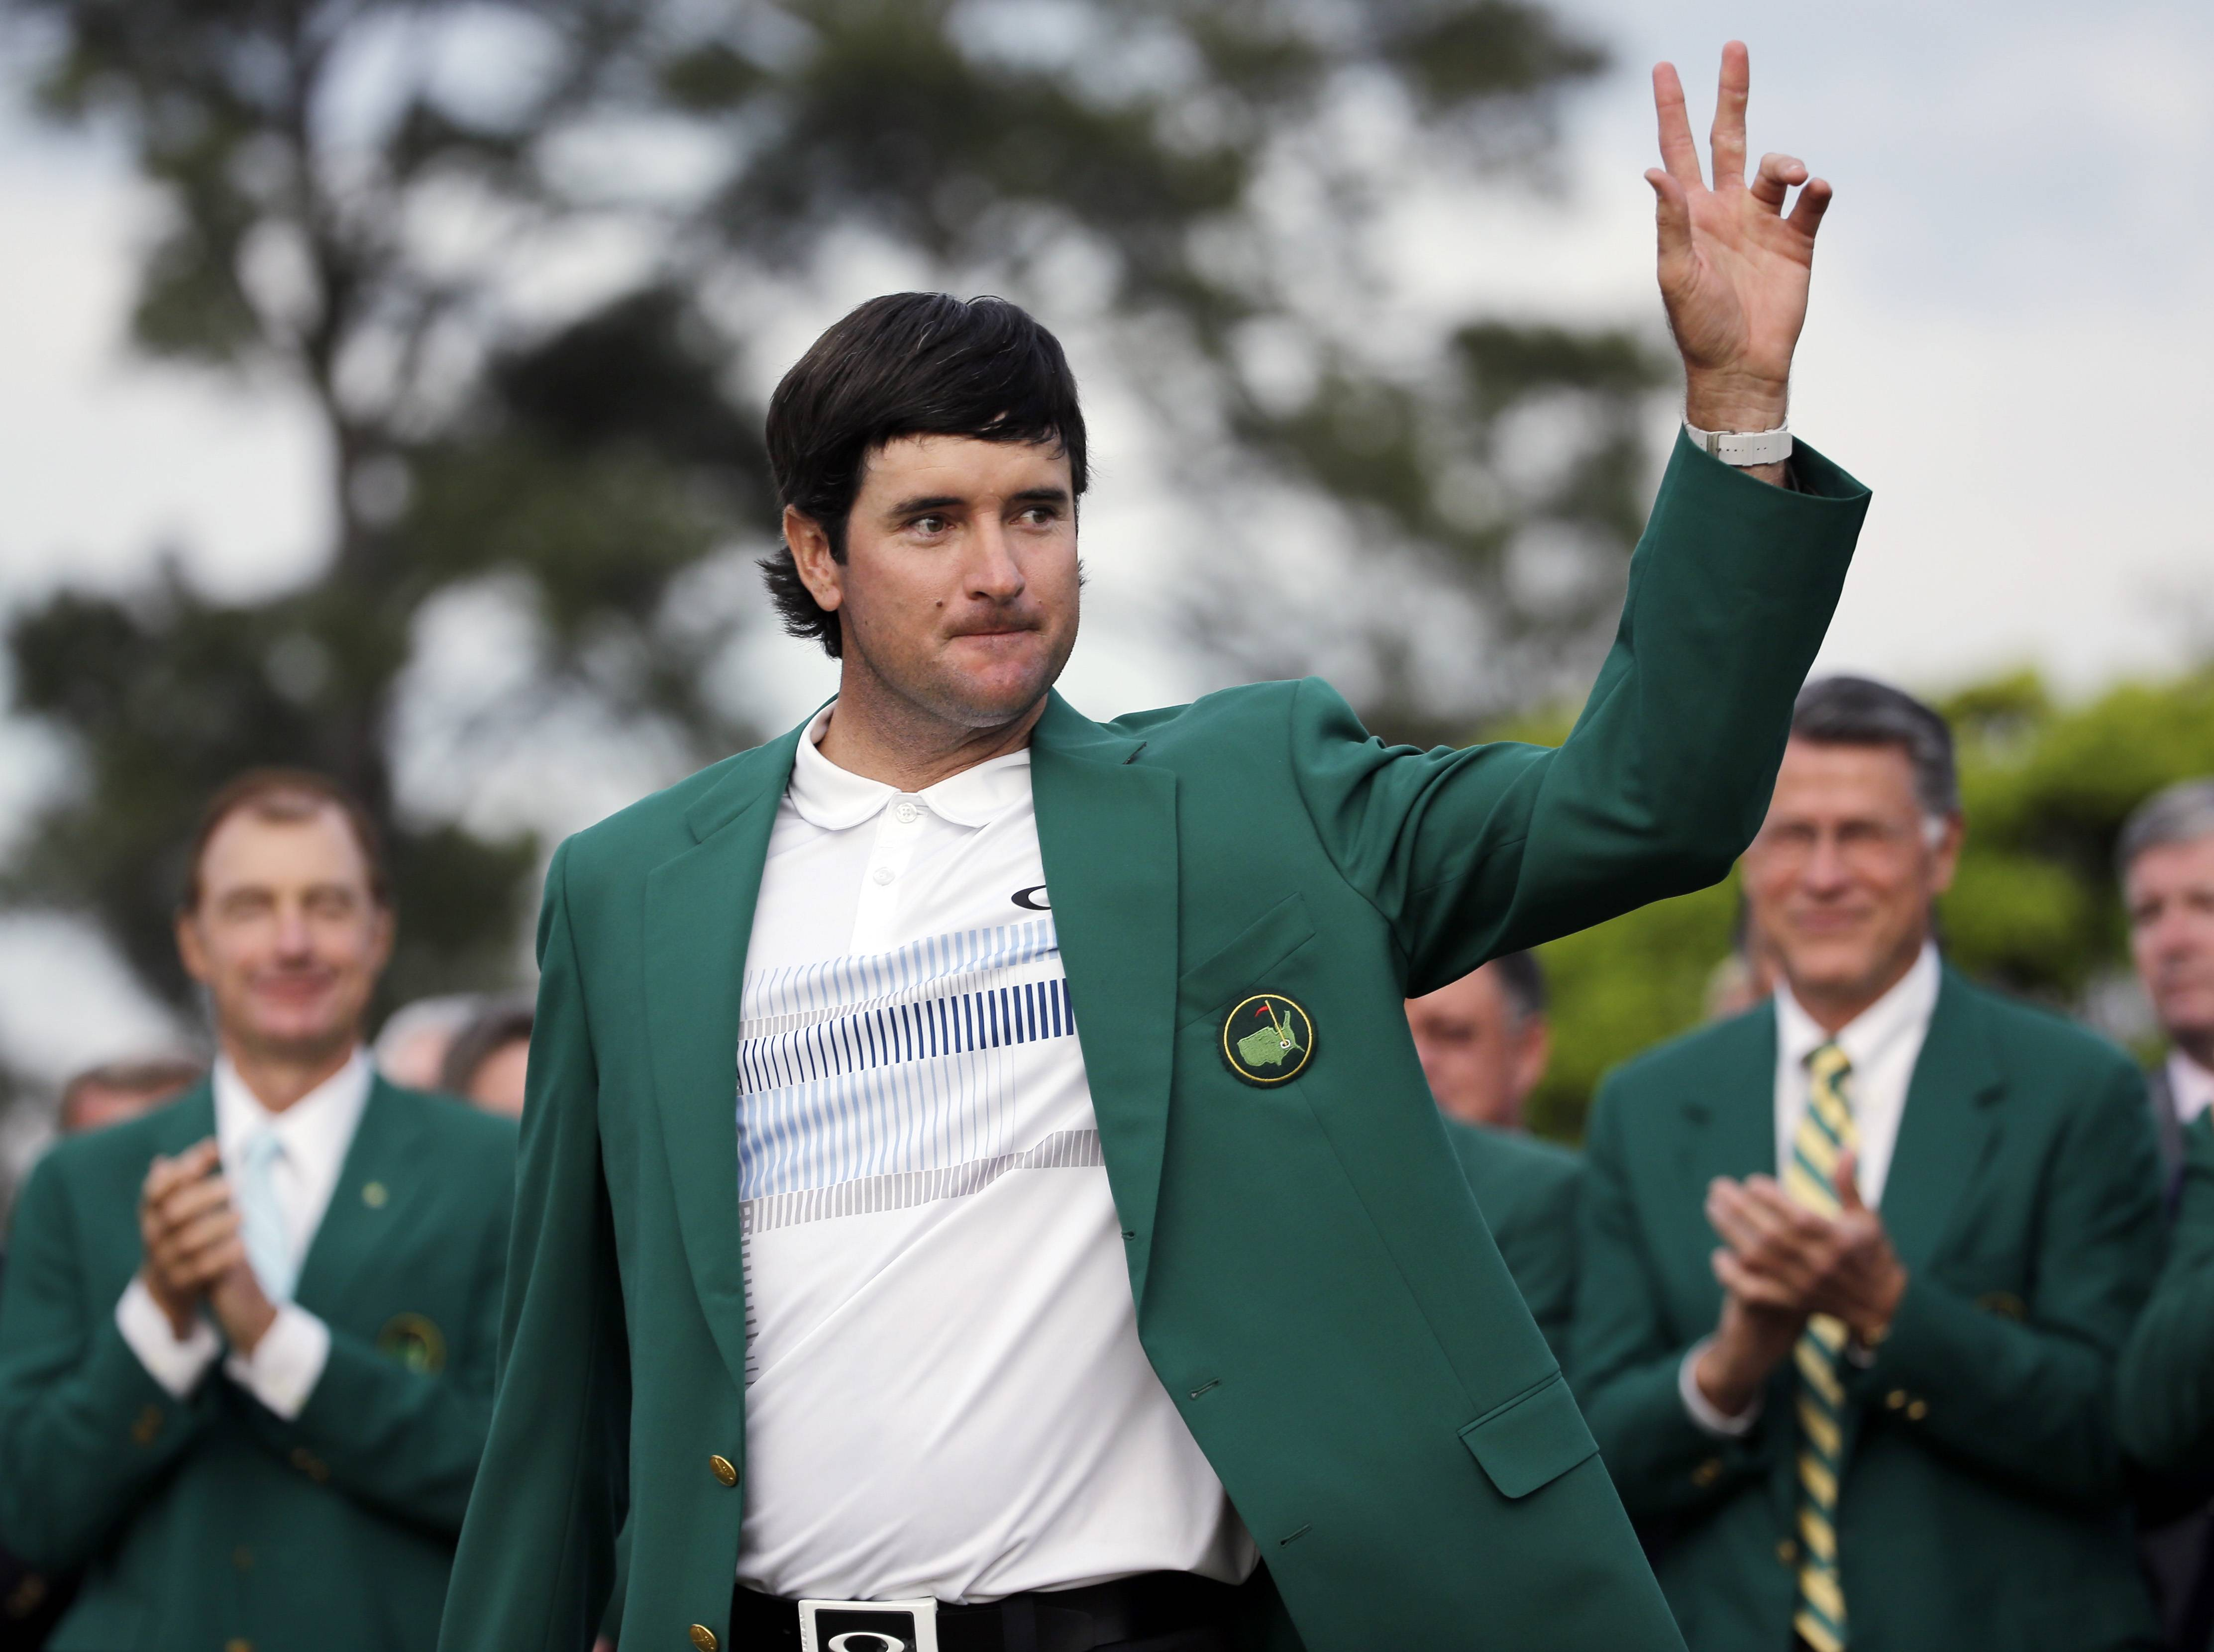 Bubba Watson waves after being presented with his green jacket after winning the Masters golf tournament Sunday, April 13, 2014, in Augusta, Ga.